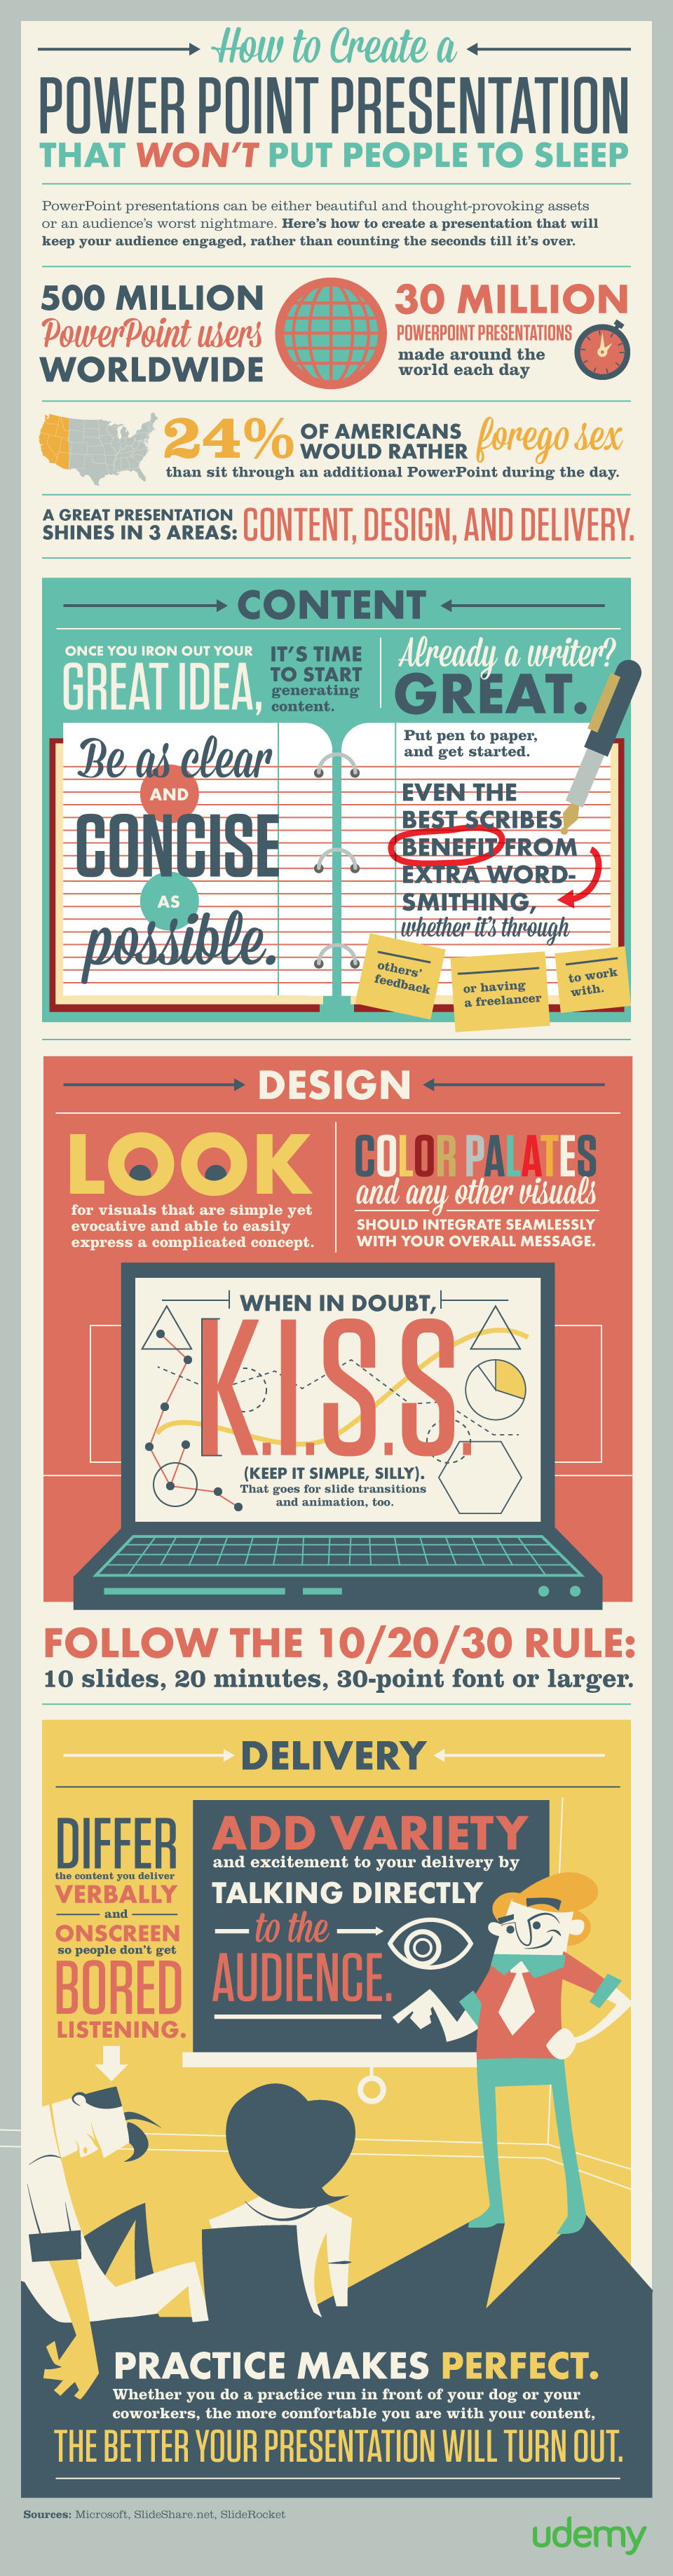 Infographic on how to make a PowerPoint that won't put people to sleep